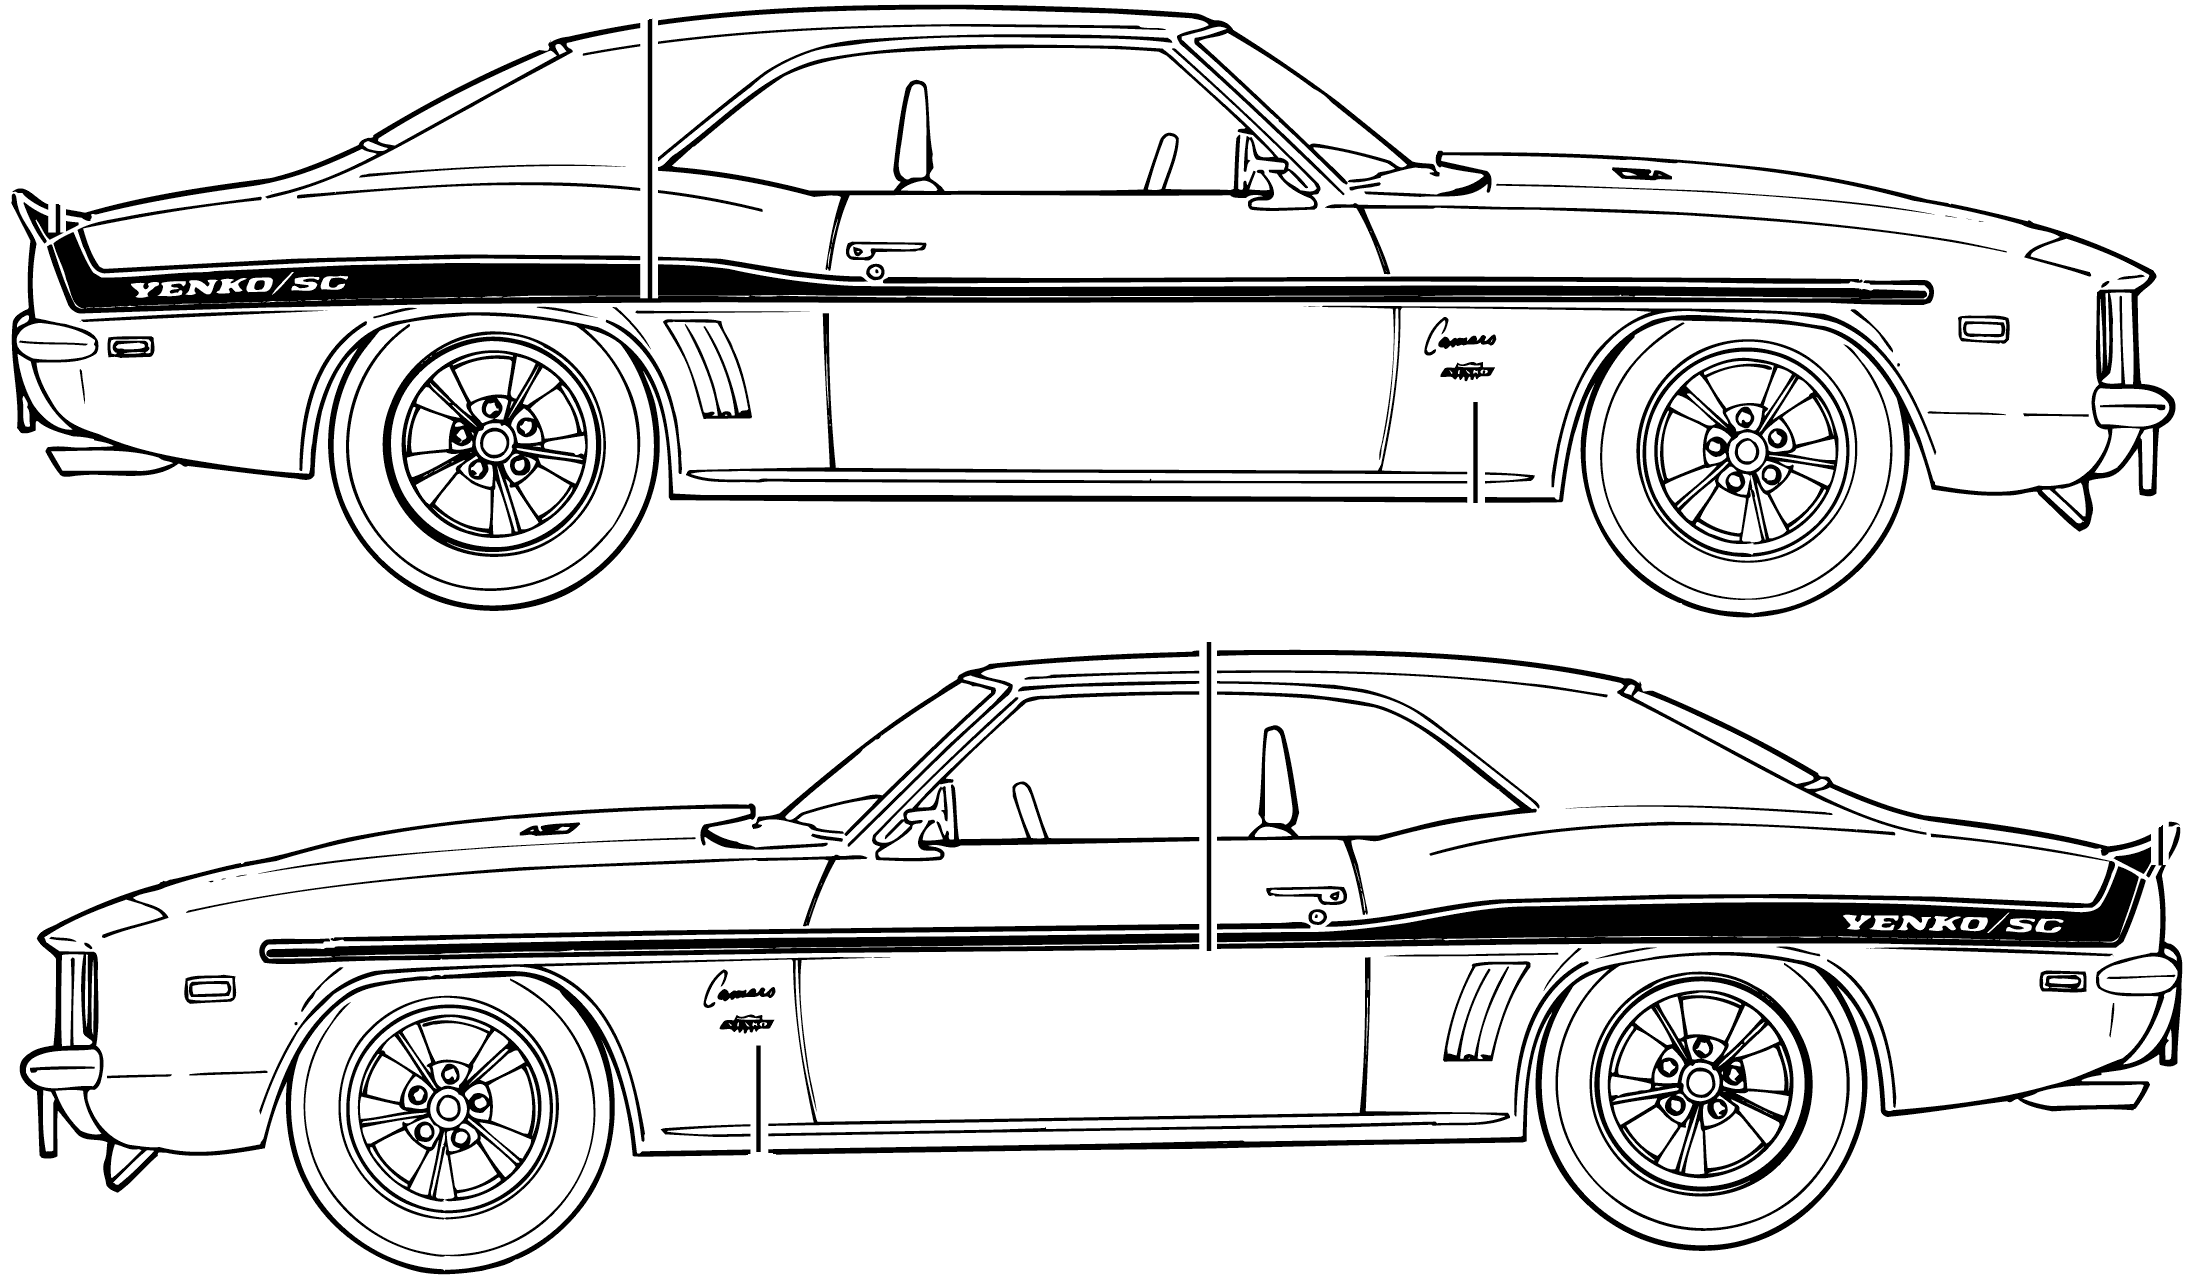 Chevrolet El Camino Coloring Pages Sketch Templates moreover Dodge Wrap Design Templates TGMvReq44E0jG1qYrK0LQbnv0UCXIZkoA8K0 mZt CM as well Dodge Coloring Sheets additionally  as well Collectionrdwn Race Car Silhouette Vector. on muscle charger